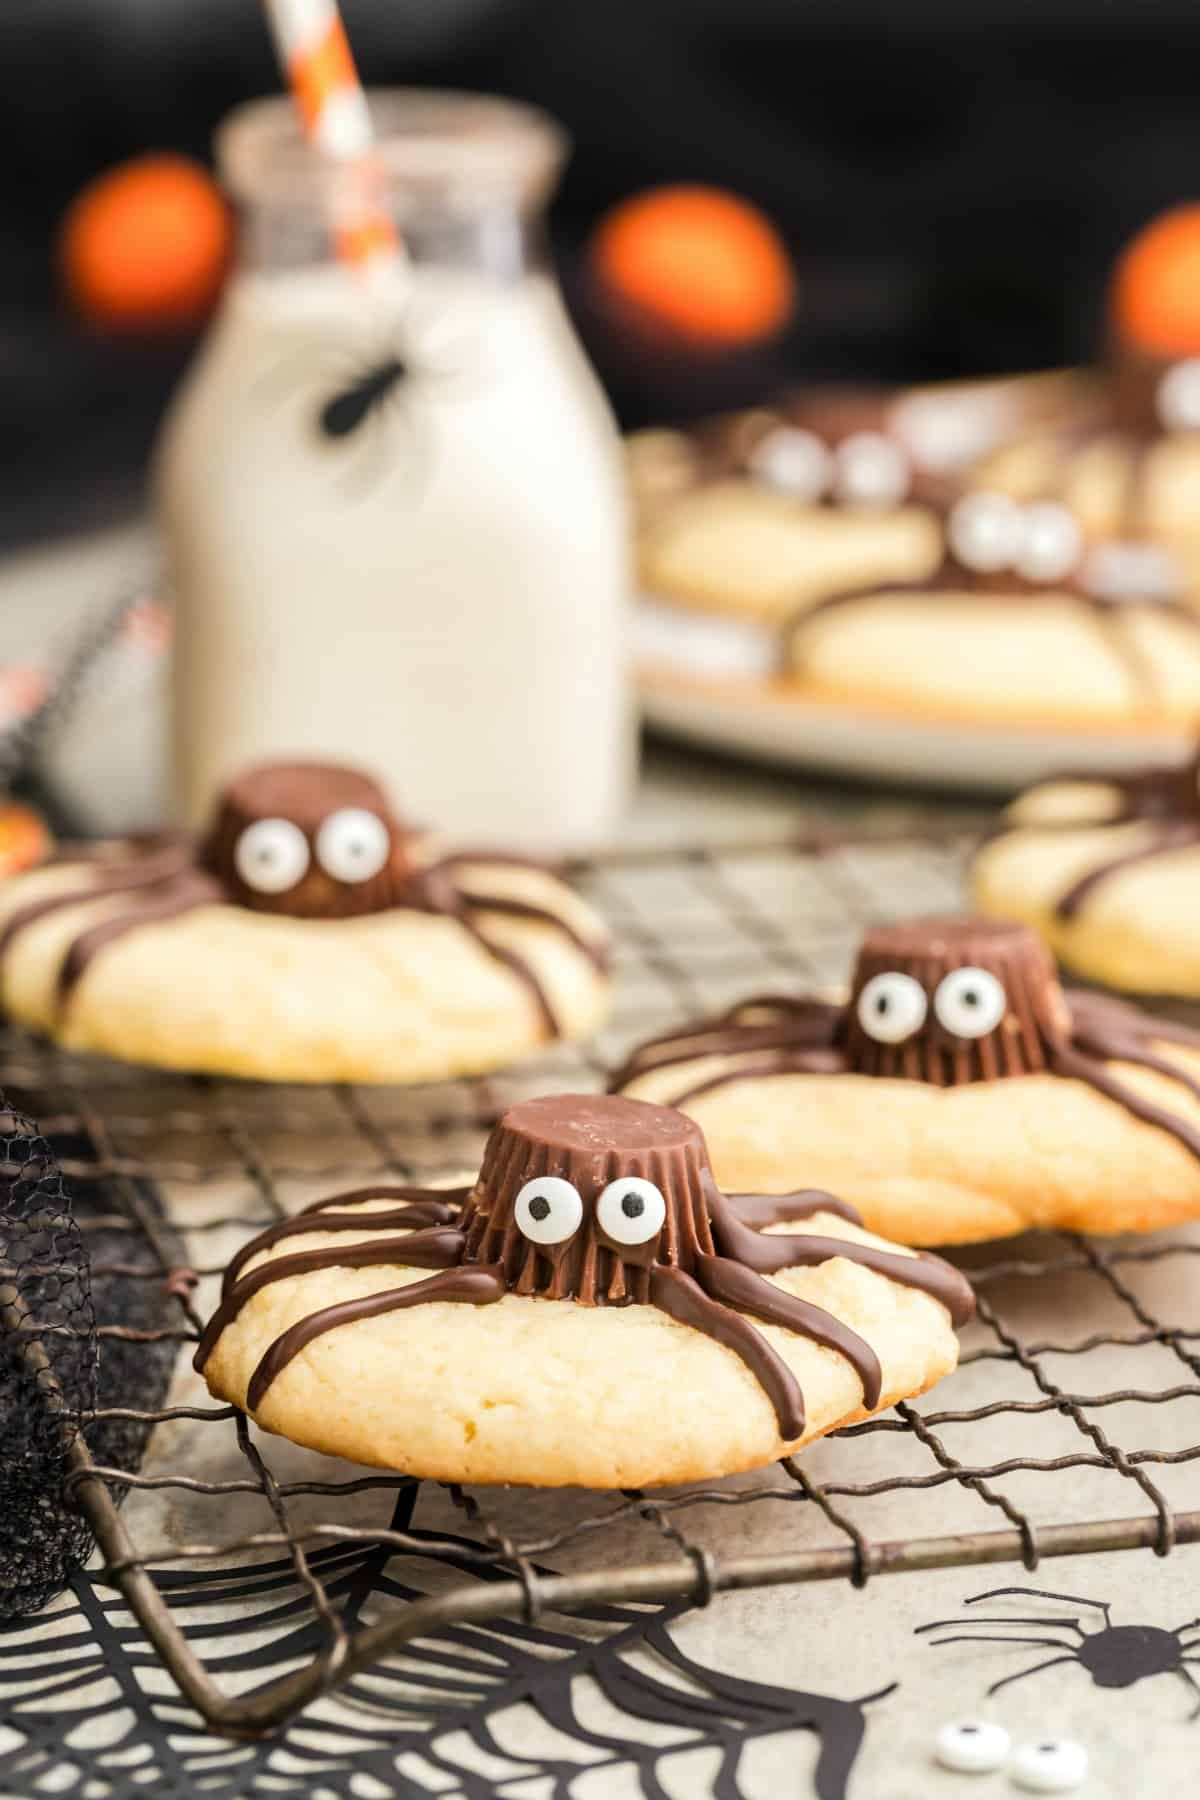 Spider Cookies on a wire rack